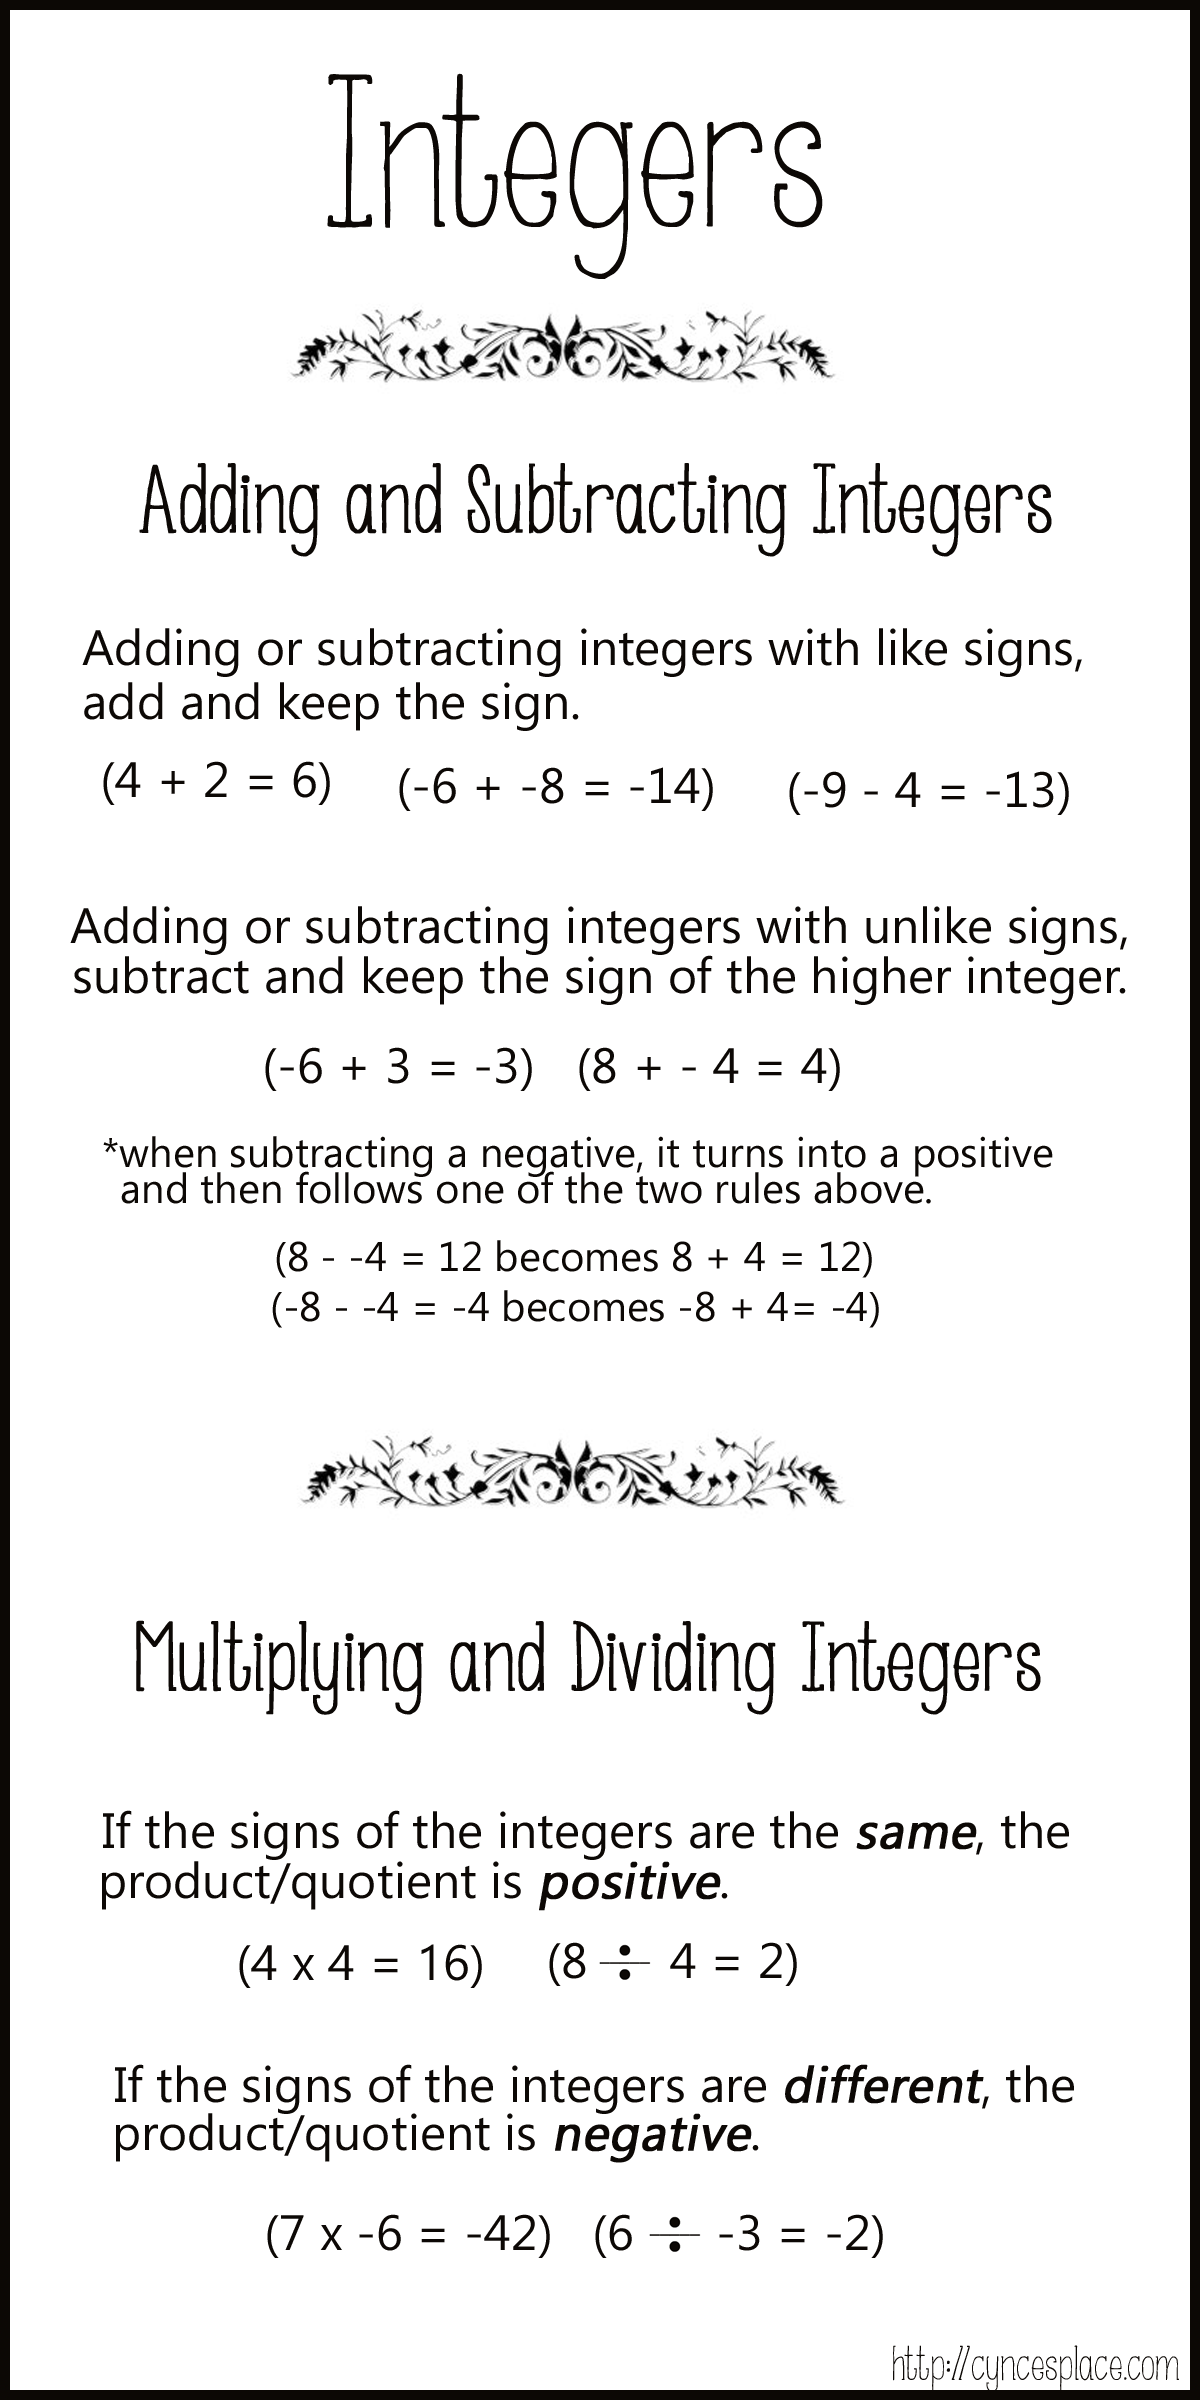 small resolution of adding-subtracting-multiplying-and-dividing-integers-chart-3 1